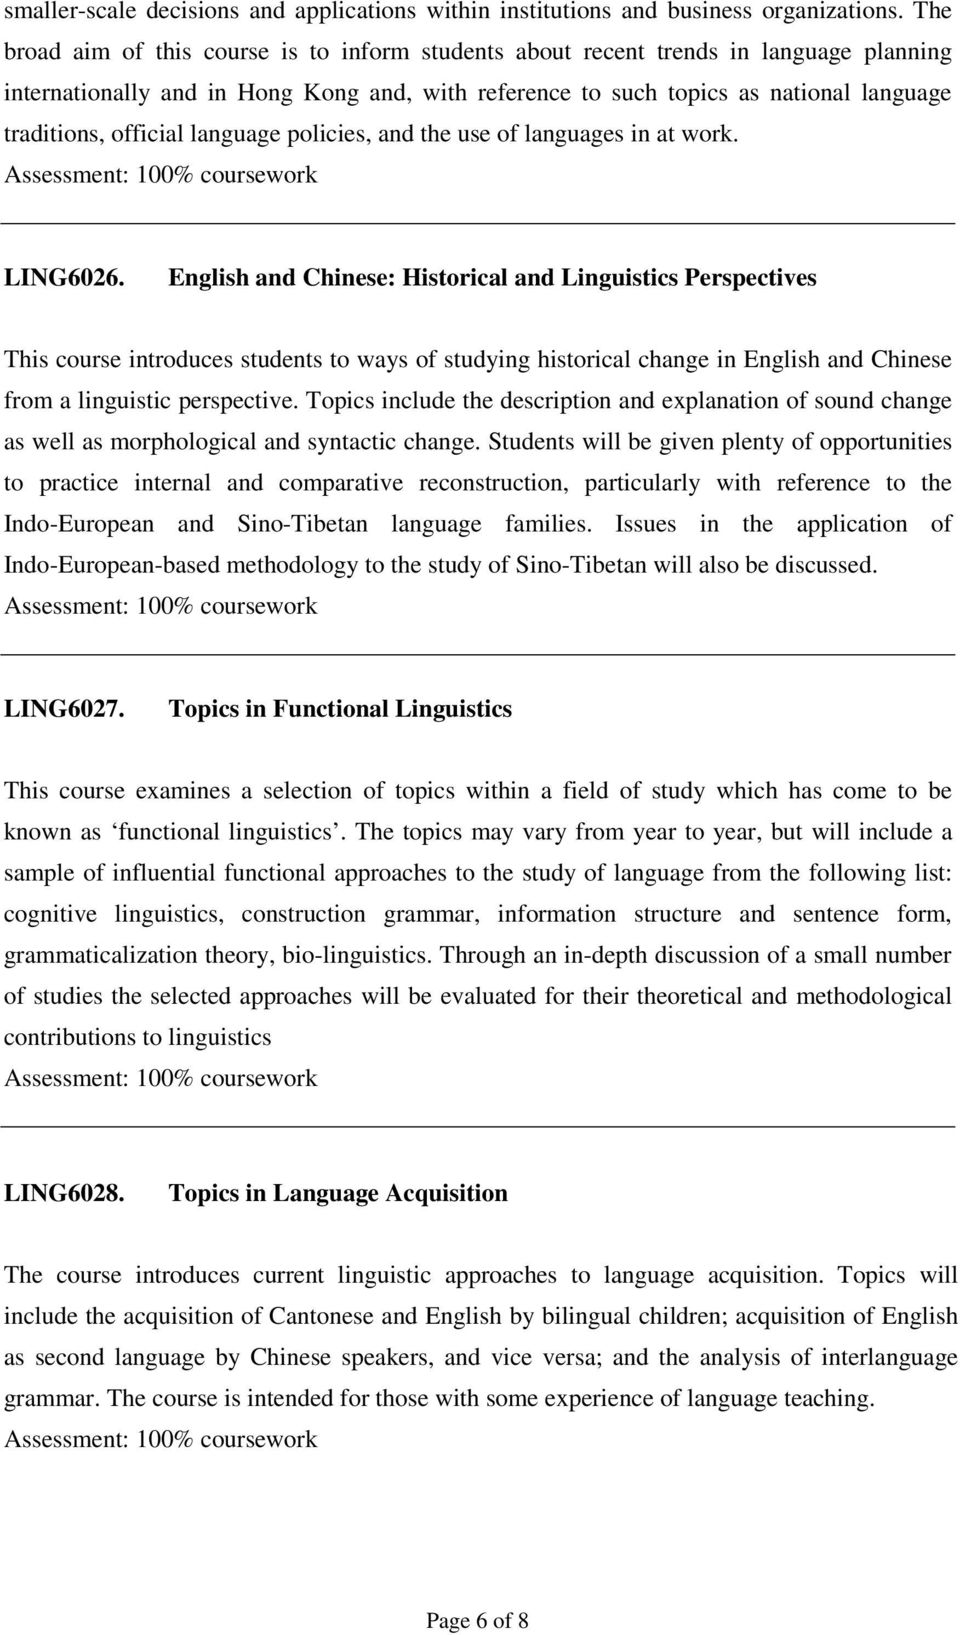 official language policies, and the use of languages in at work. LING6026.